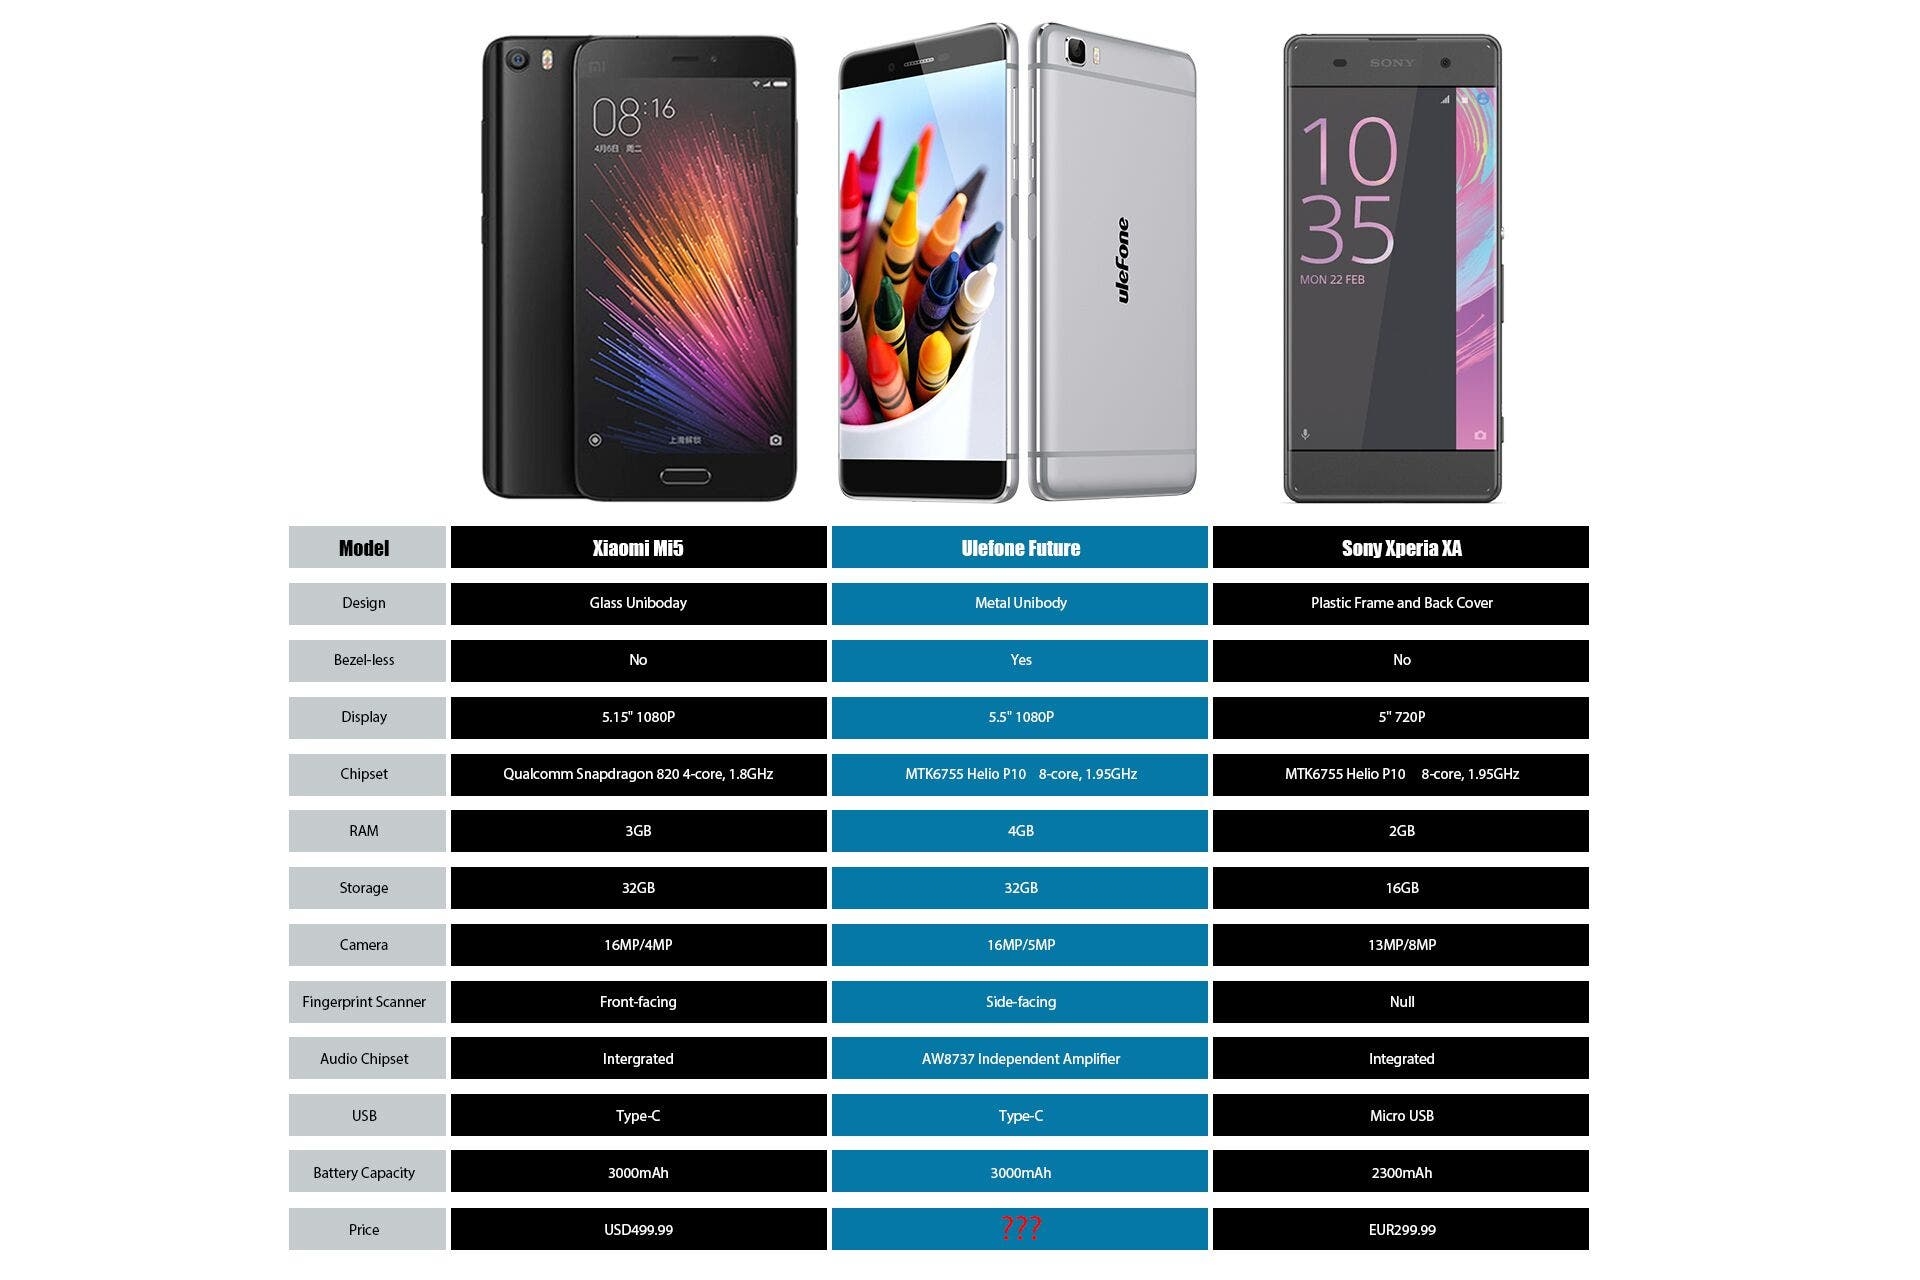 ulefone future specificaitons